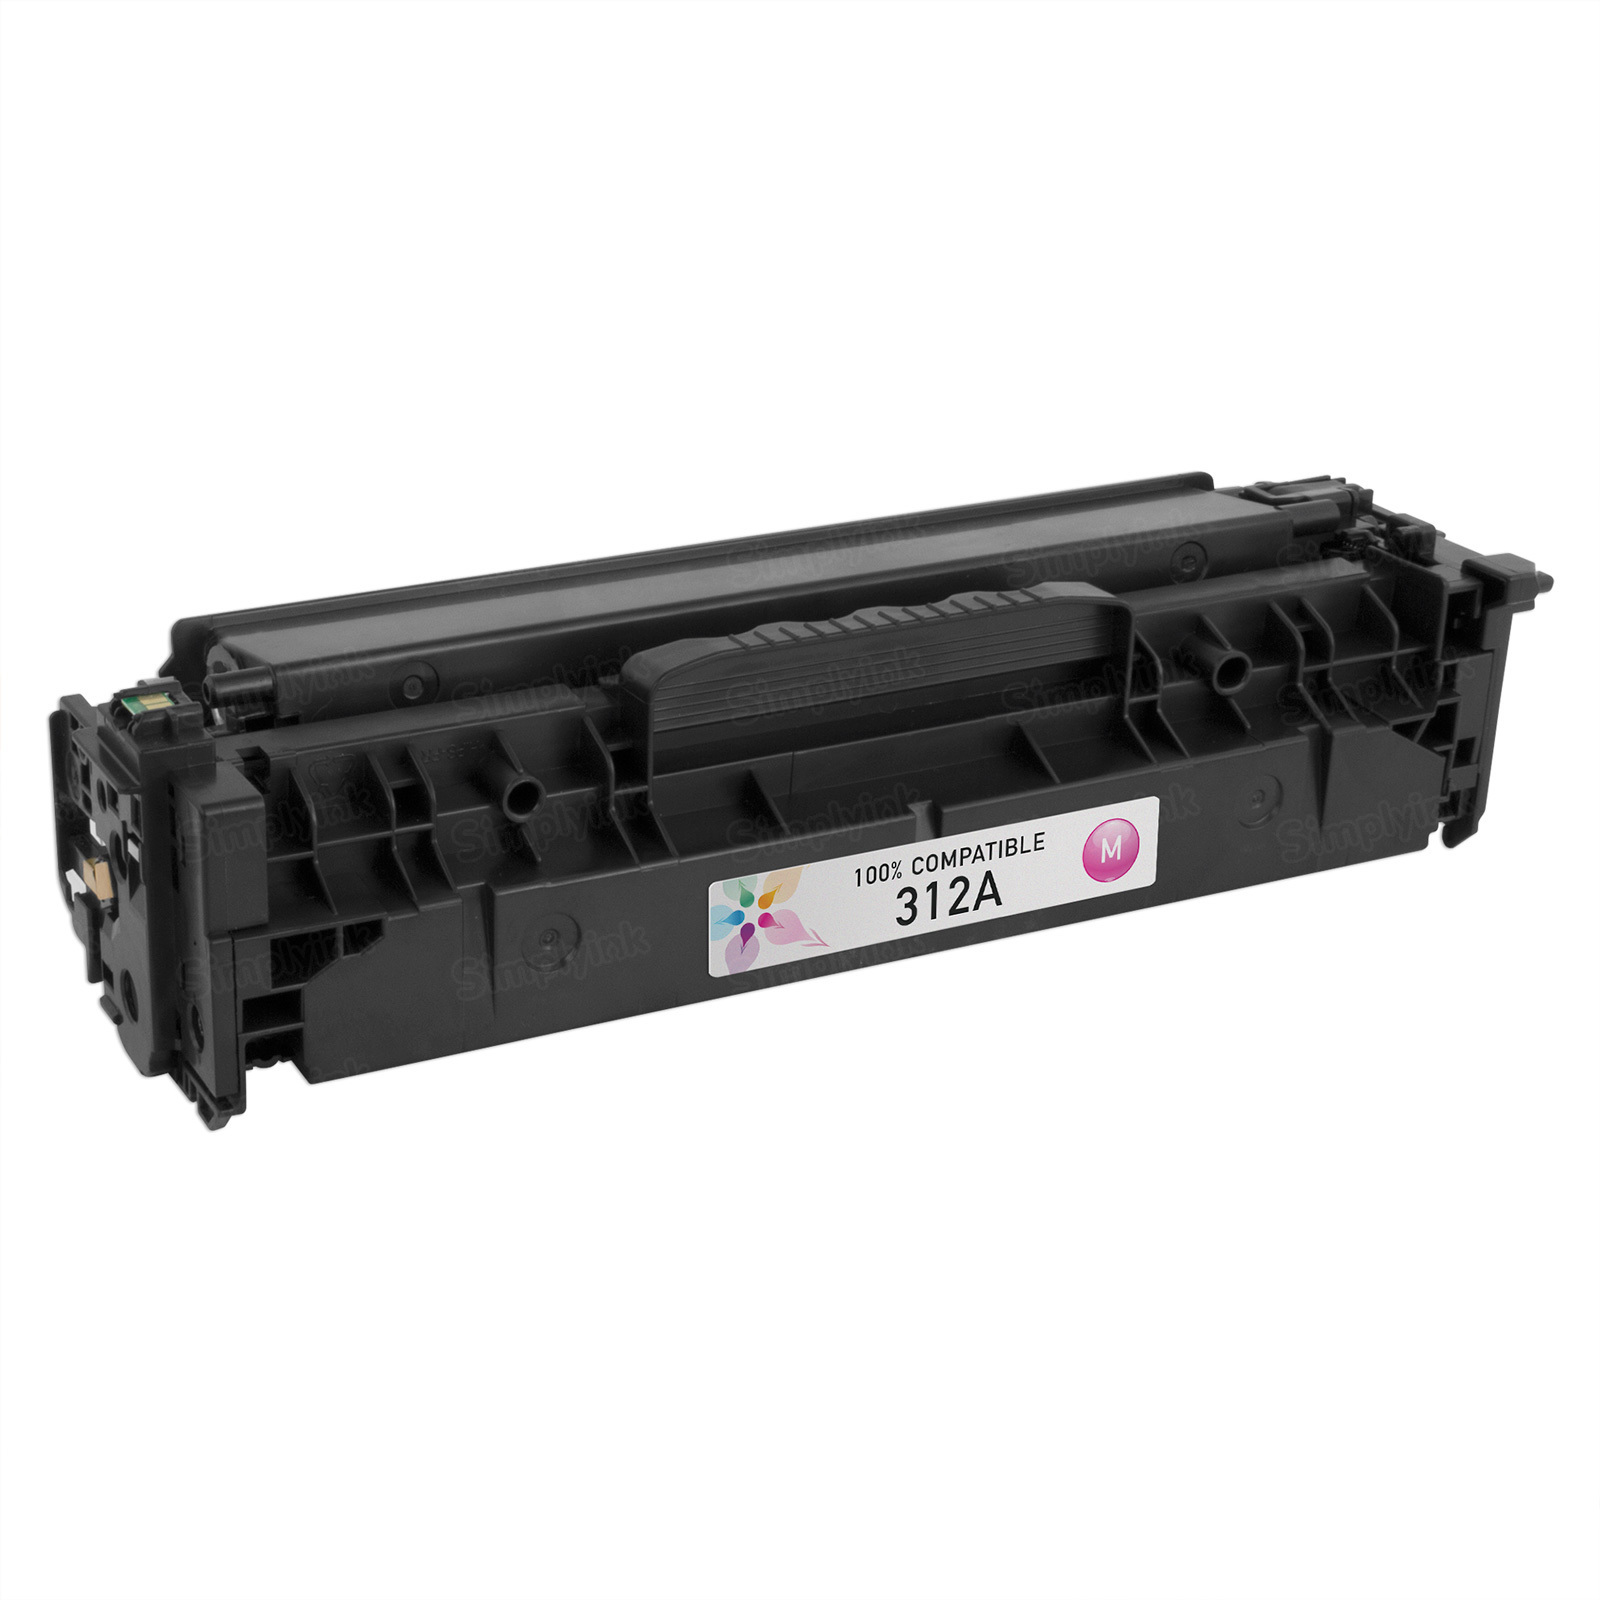 Replacement Magenta Toner for HP 312A